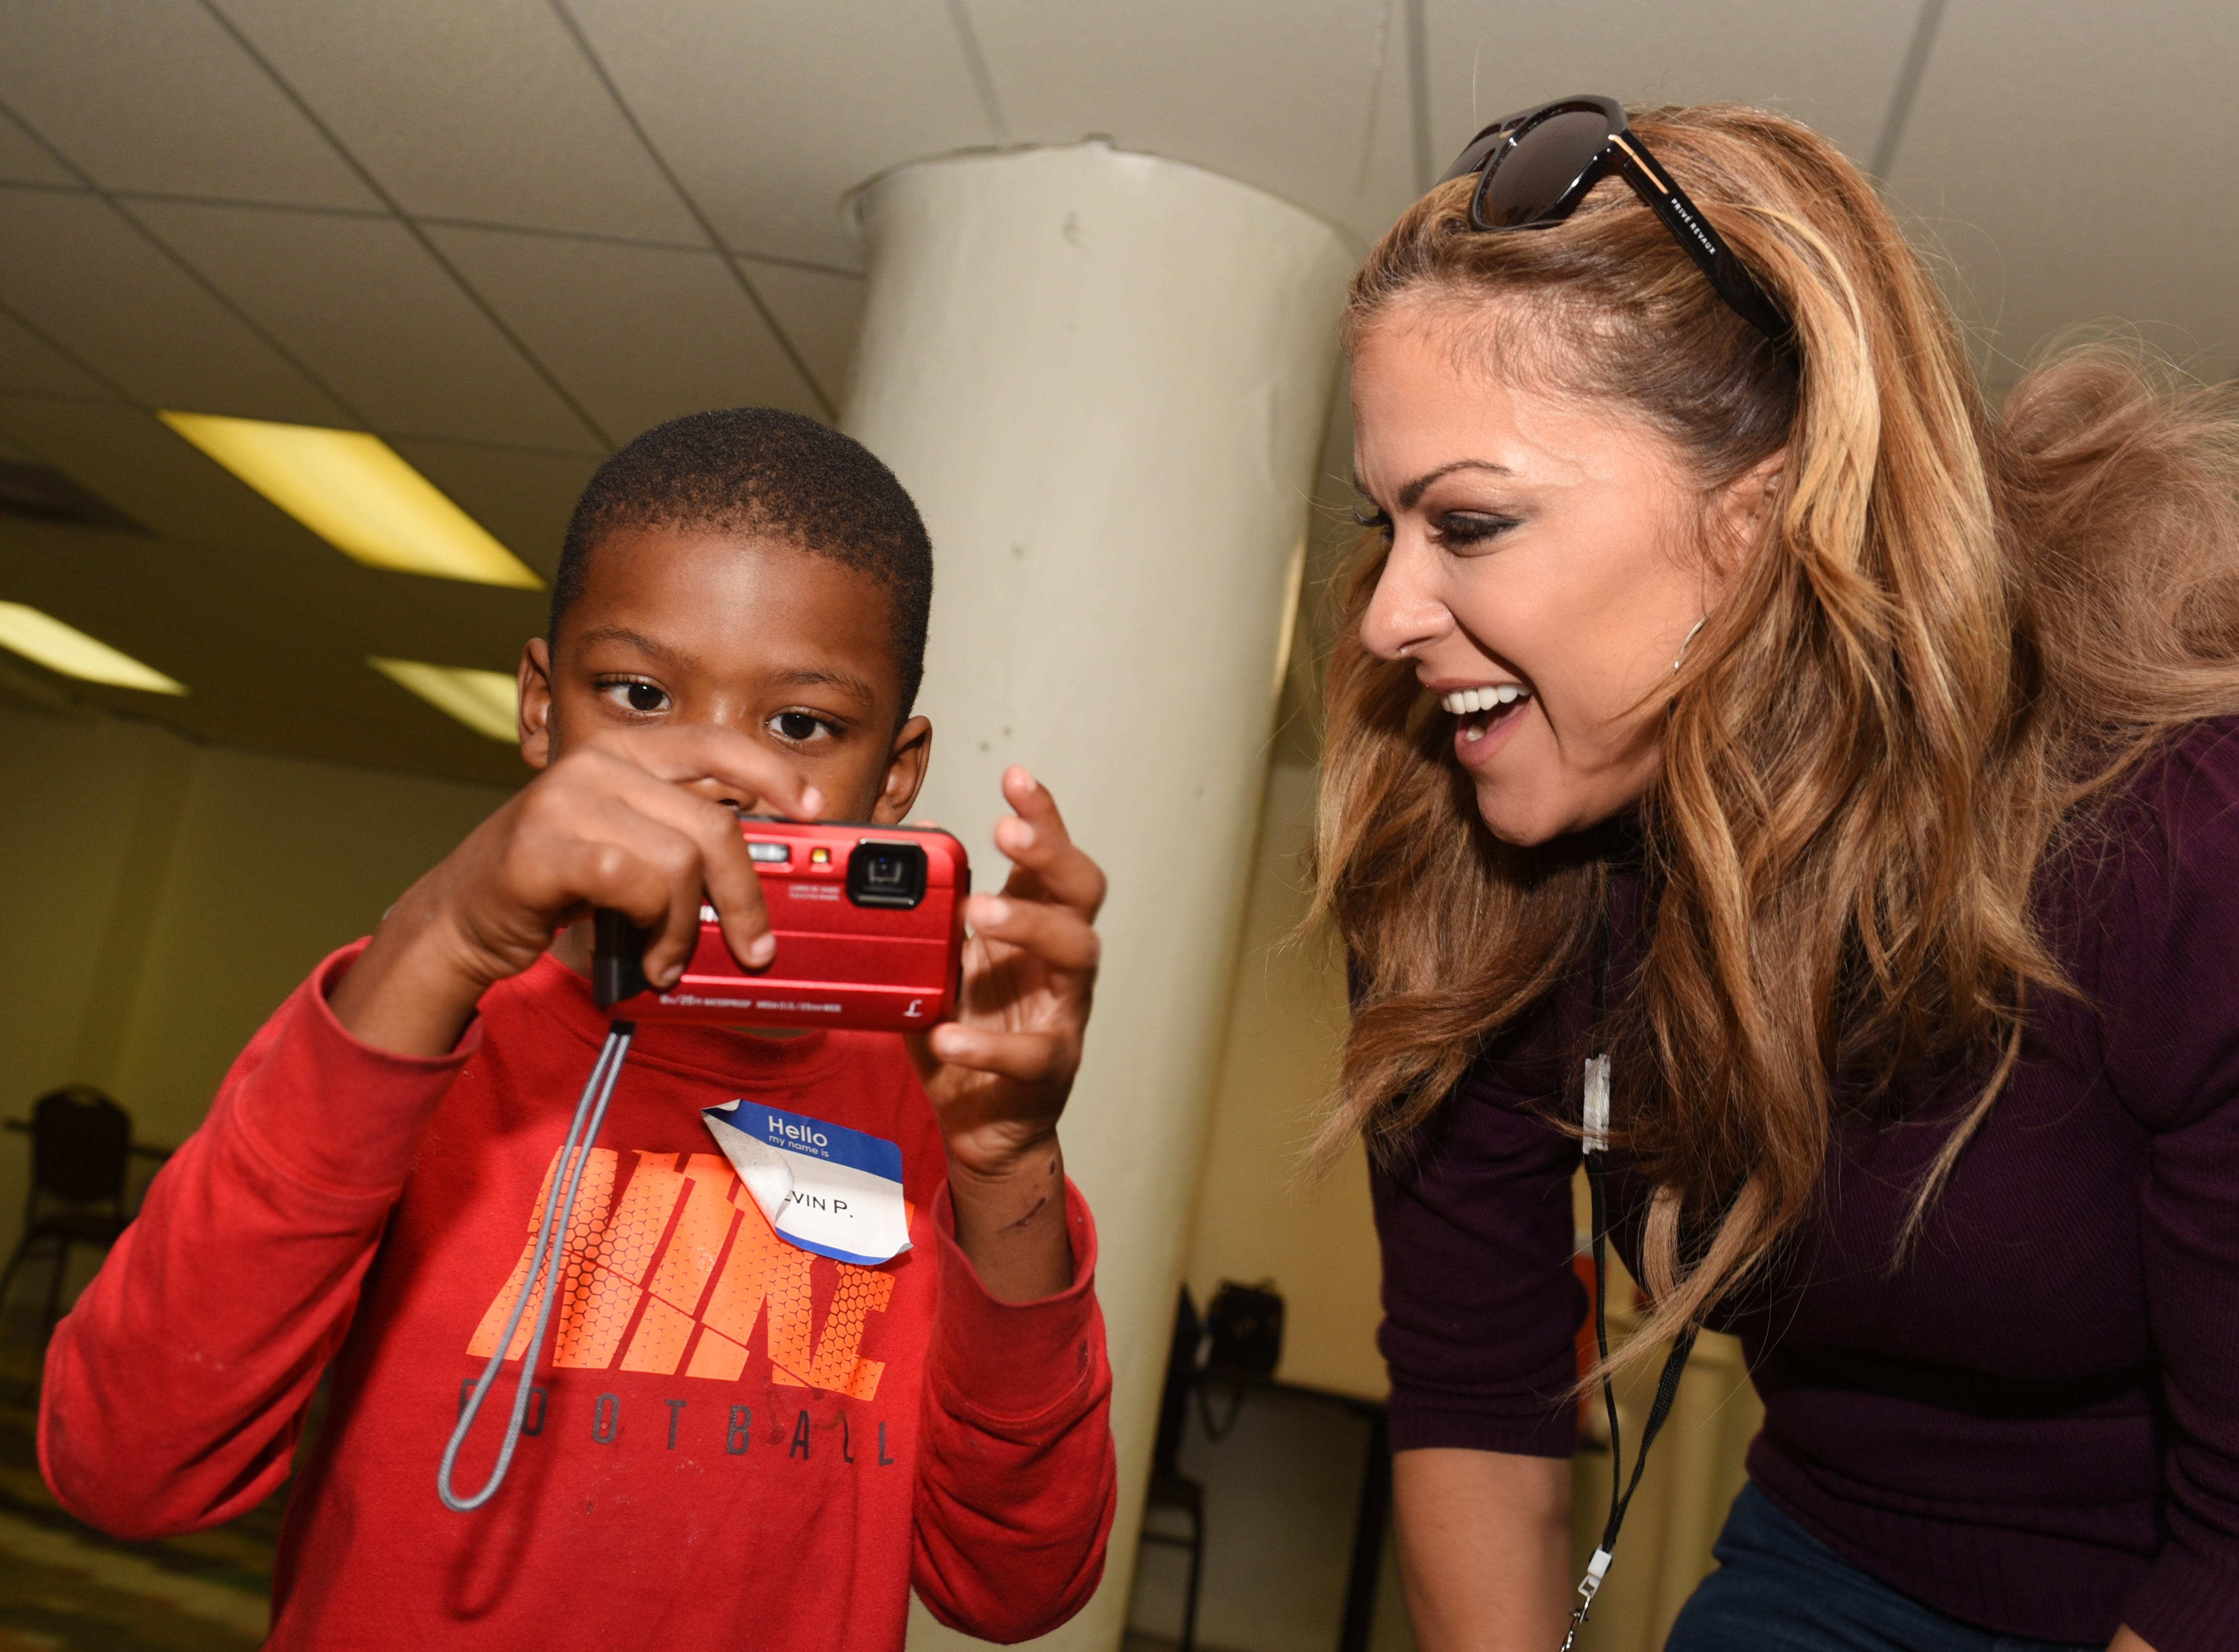 Fox 2 reporter Taryn Asher (right) works with Kevin P as they view images taken during a lesson given by famed  photographer Linda Solomon for homeless children in Detroit on October 20, 2018.